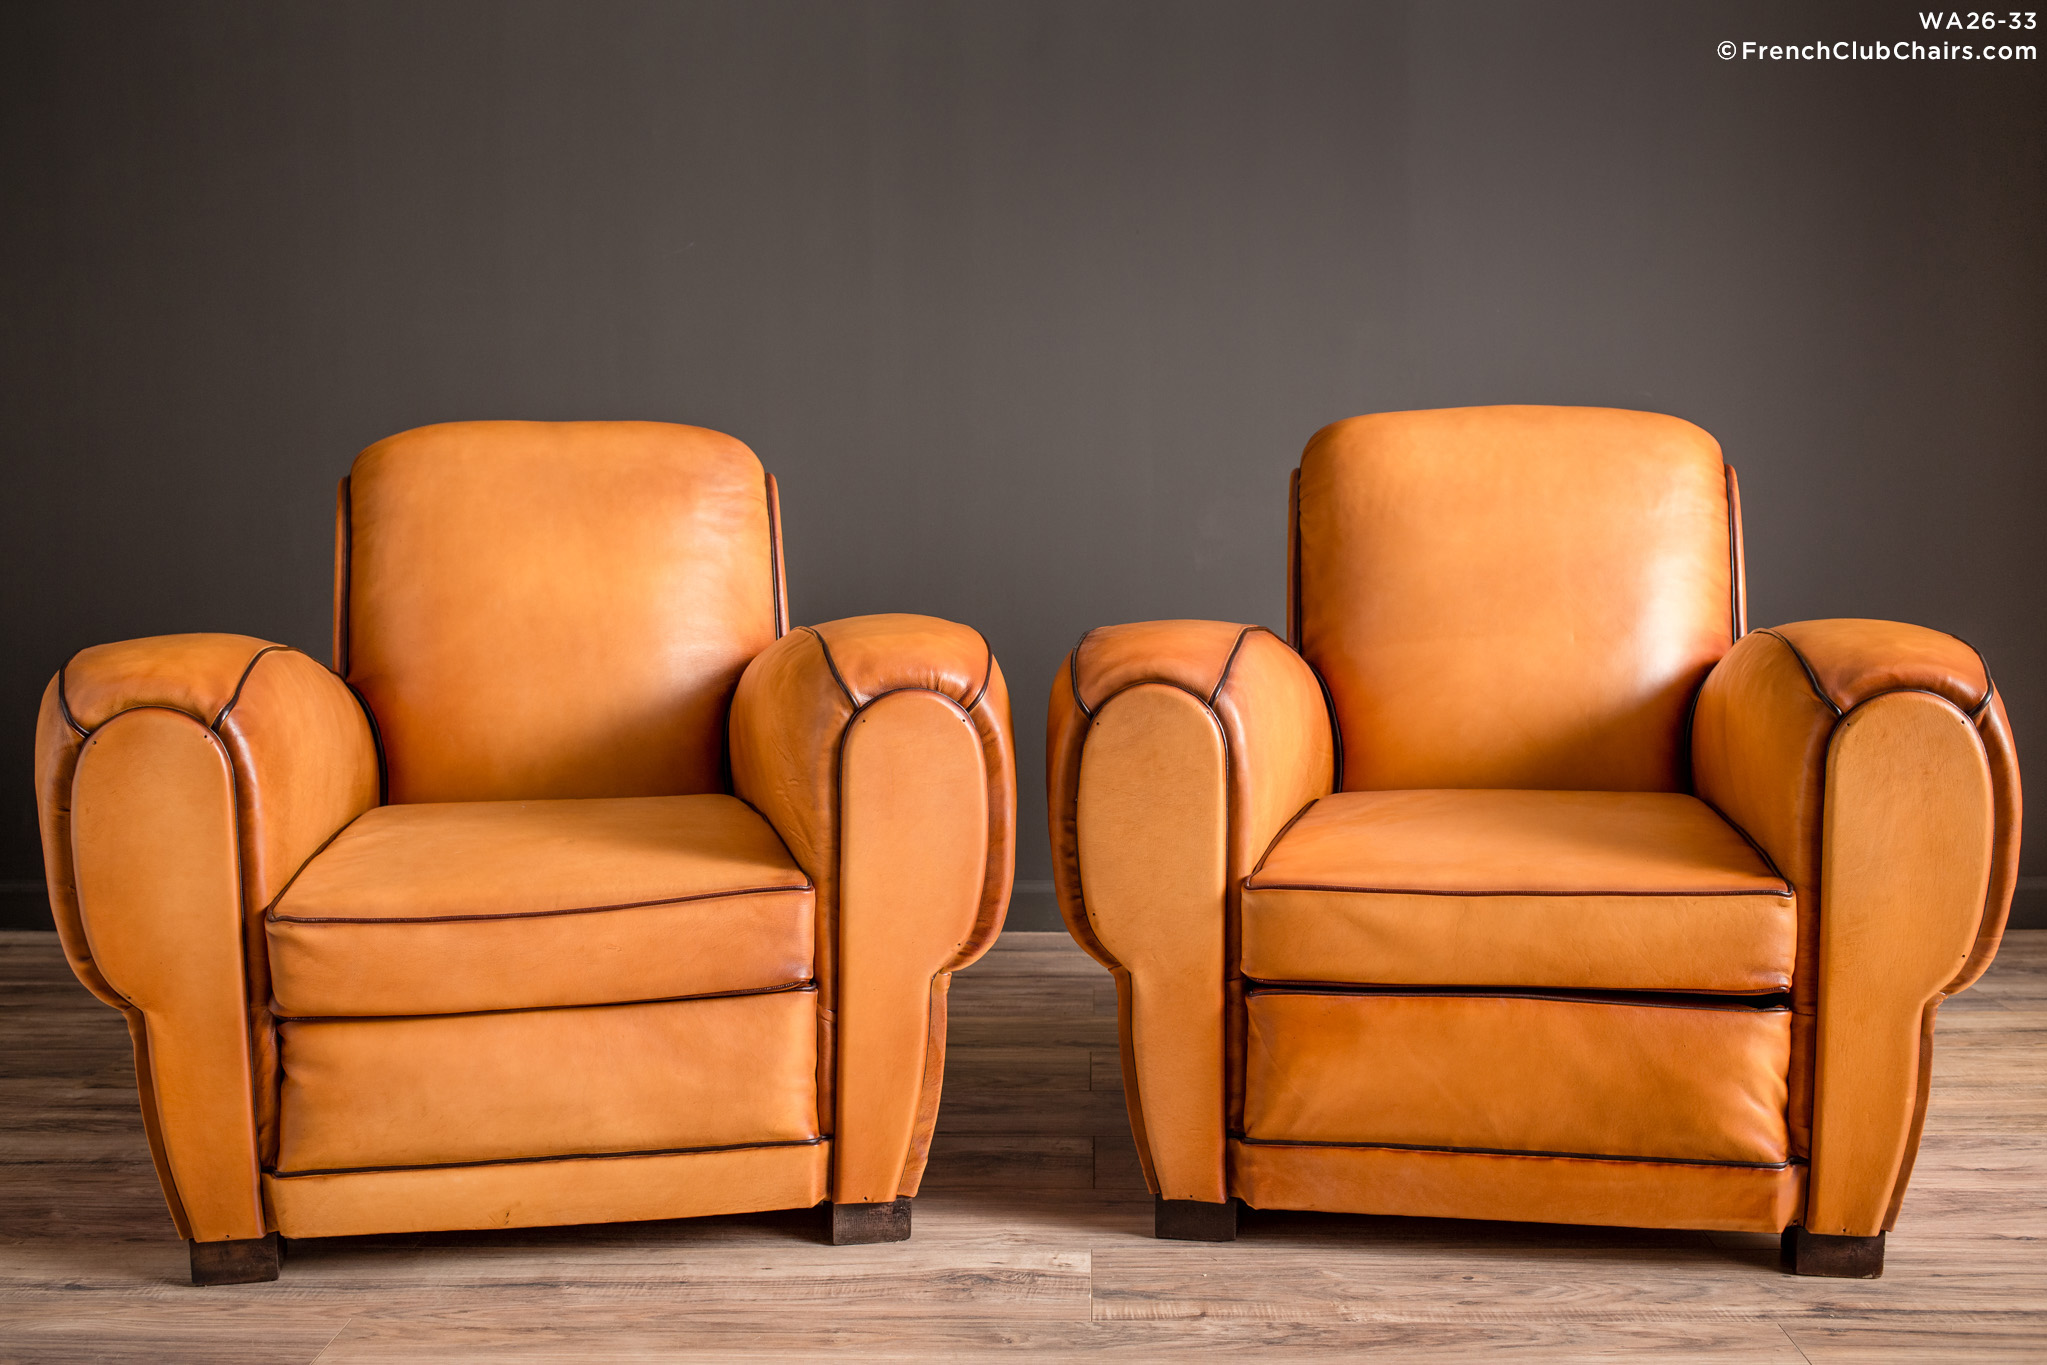 WA_26-33_Rambouillet_Rollback_Pair_R_1TQ-v01-williams-antiks-leather-french-club-chair-wa_fcccom